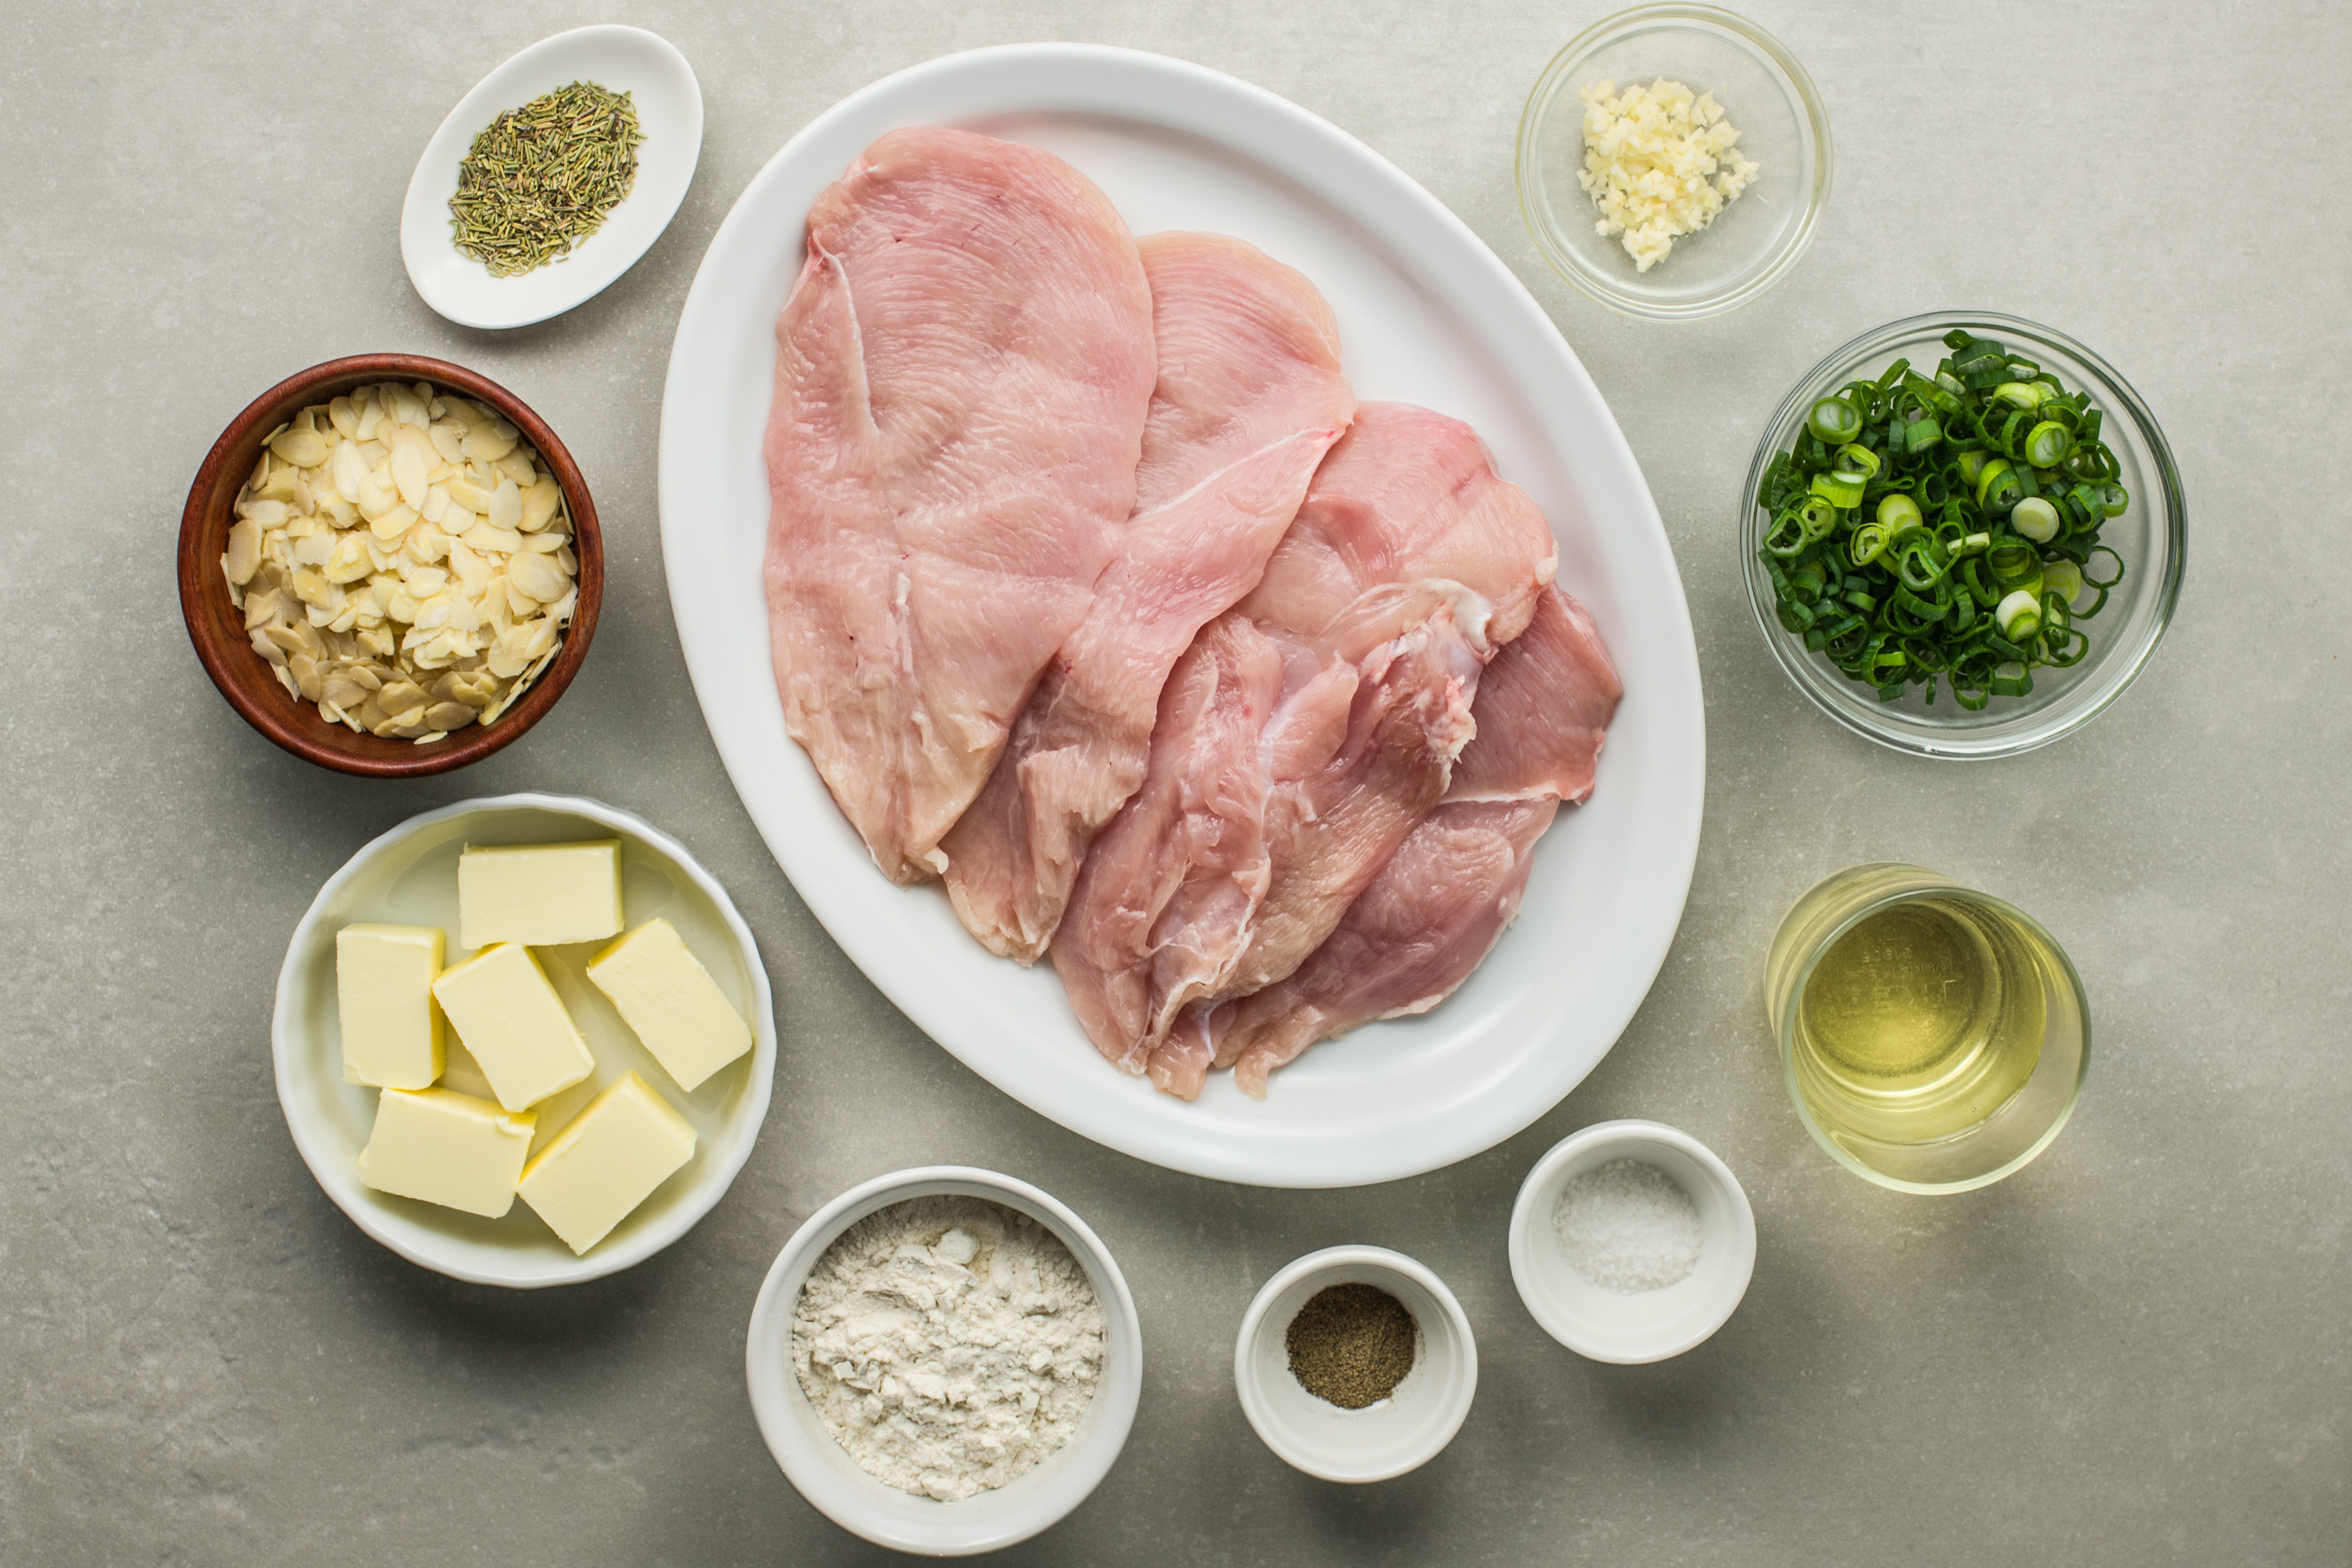 Ingredients for easy skillet chicken with almonds